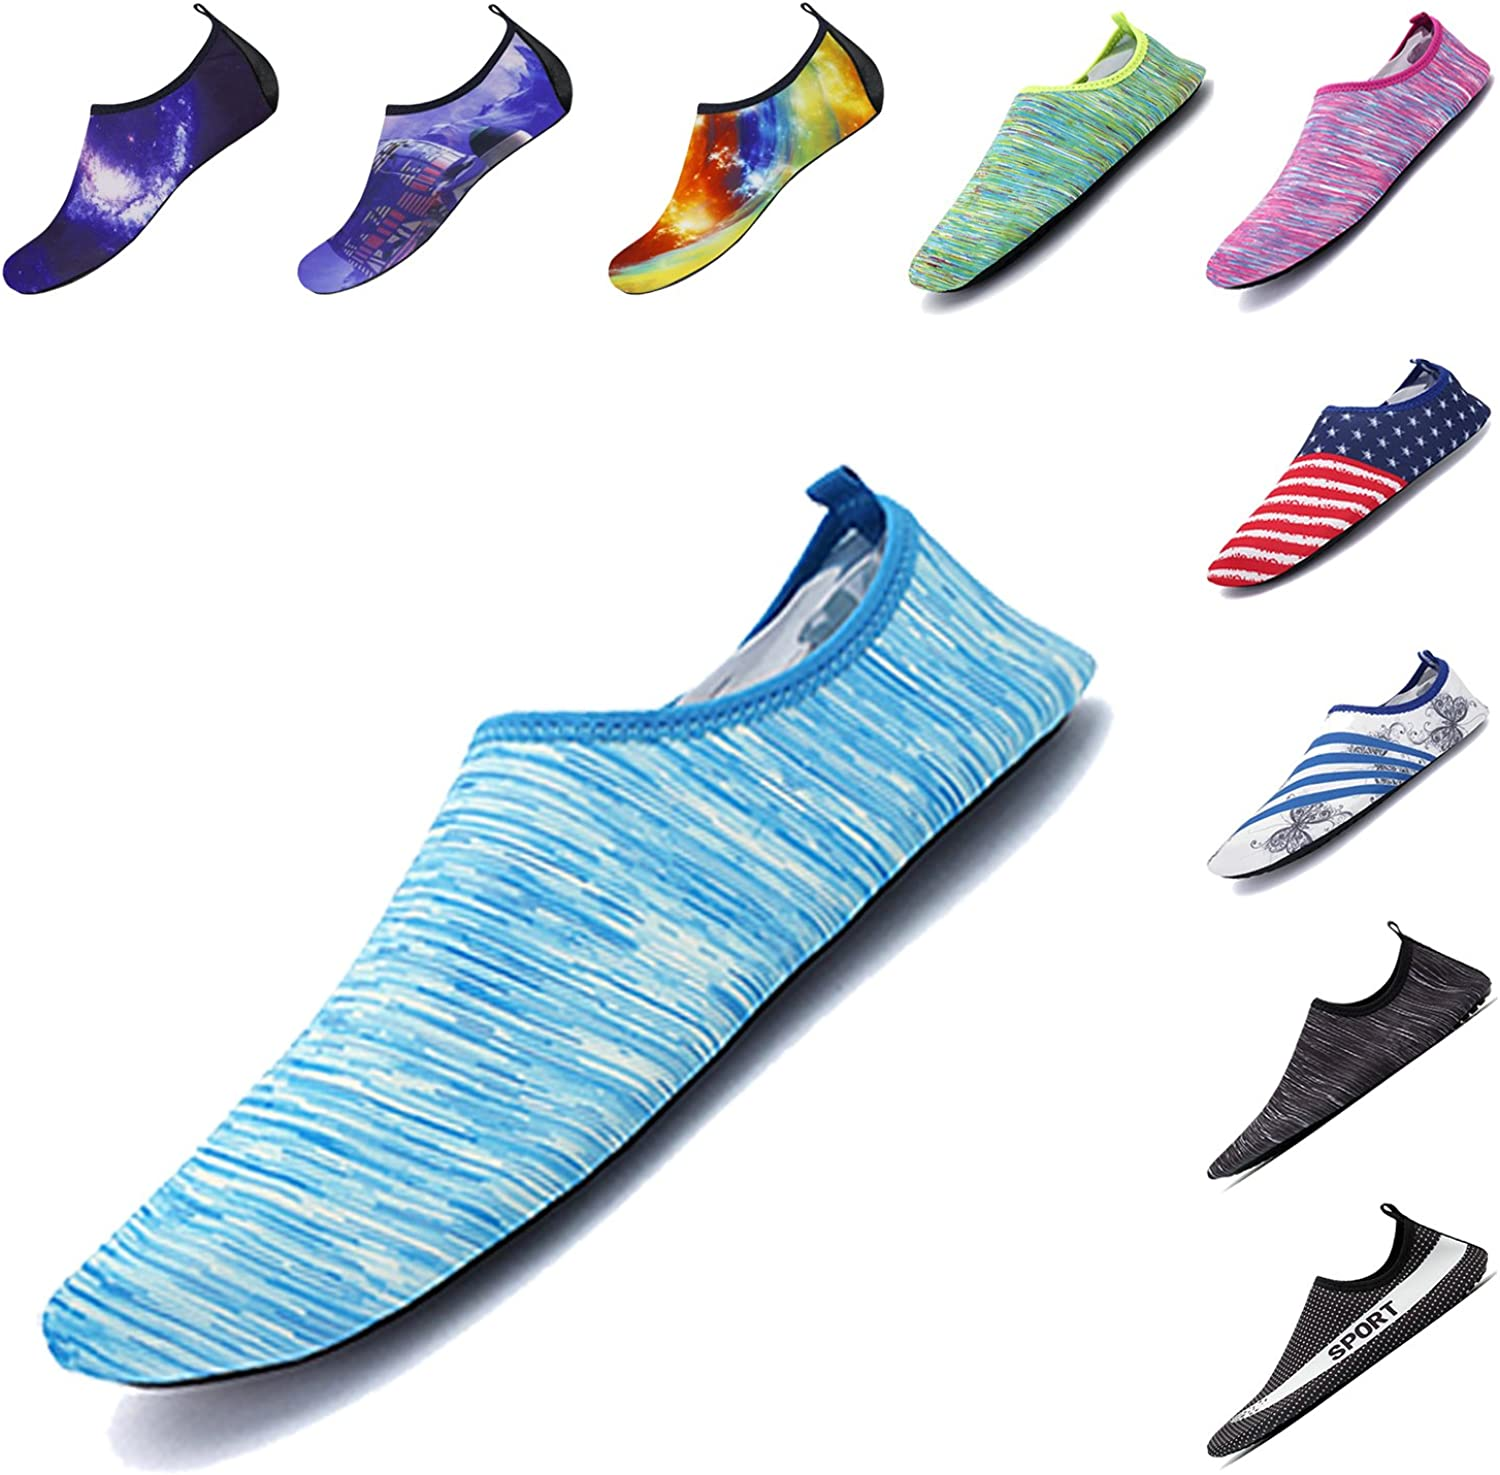 ELETOP Water shoes Quick Dry Outdoor Athletic Sport shoes Water Socks for Kayaking Boating Surfing